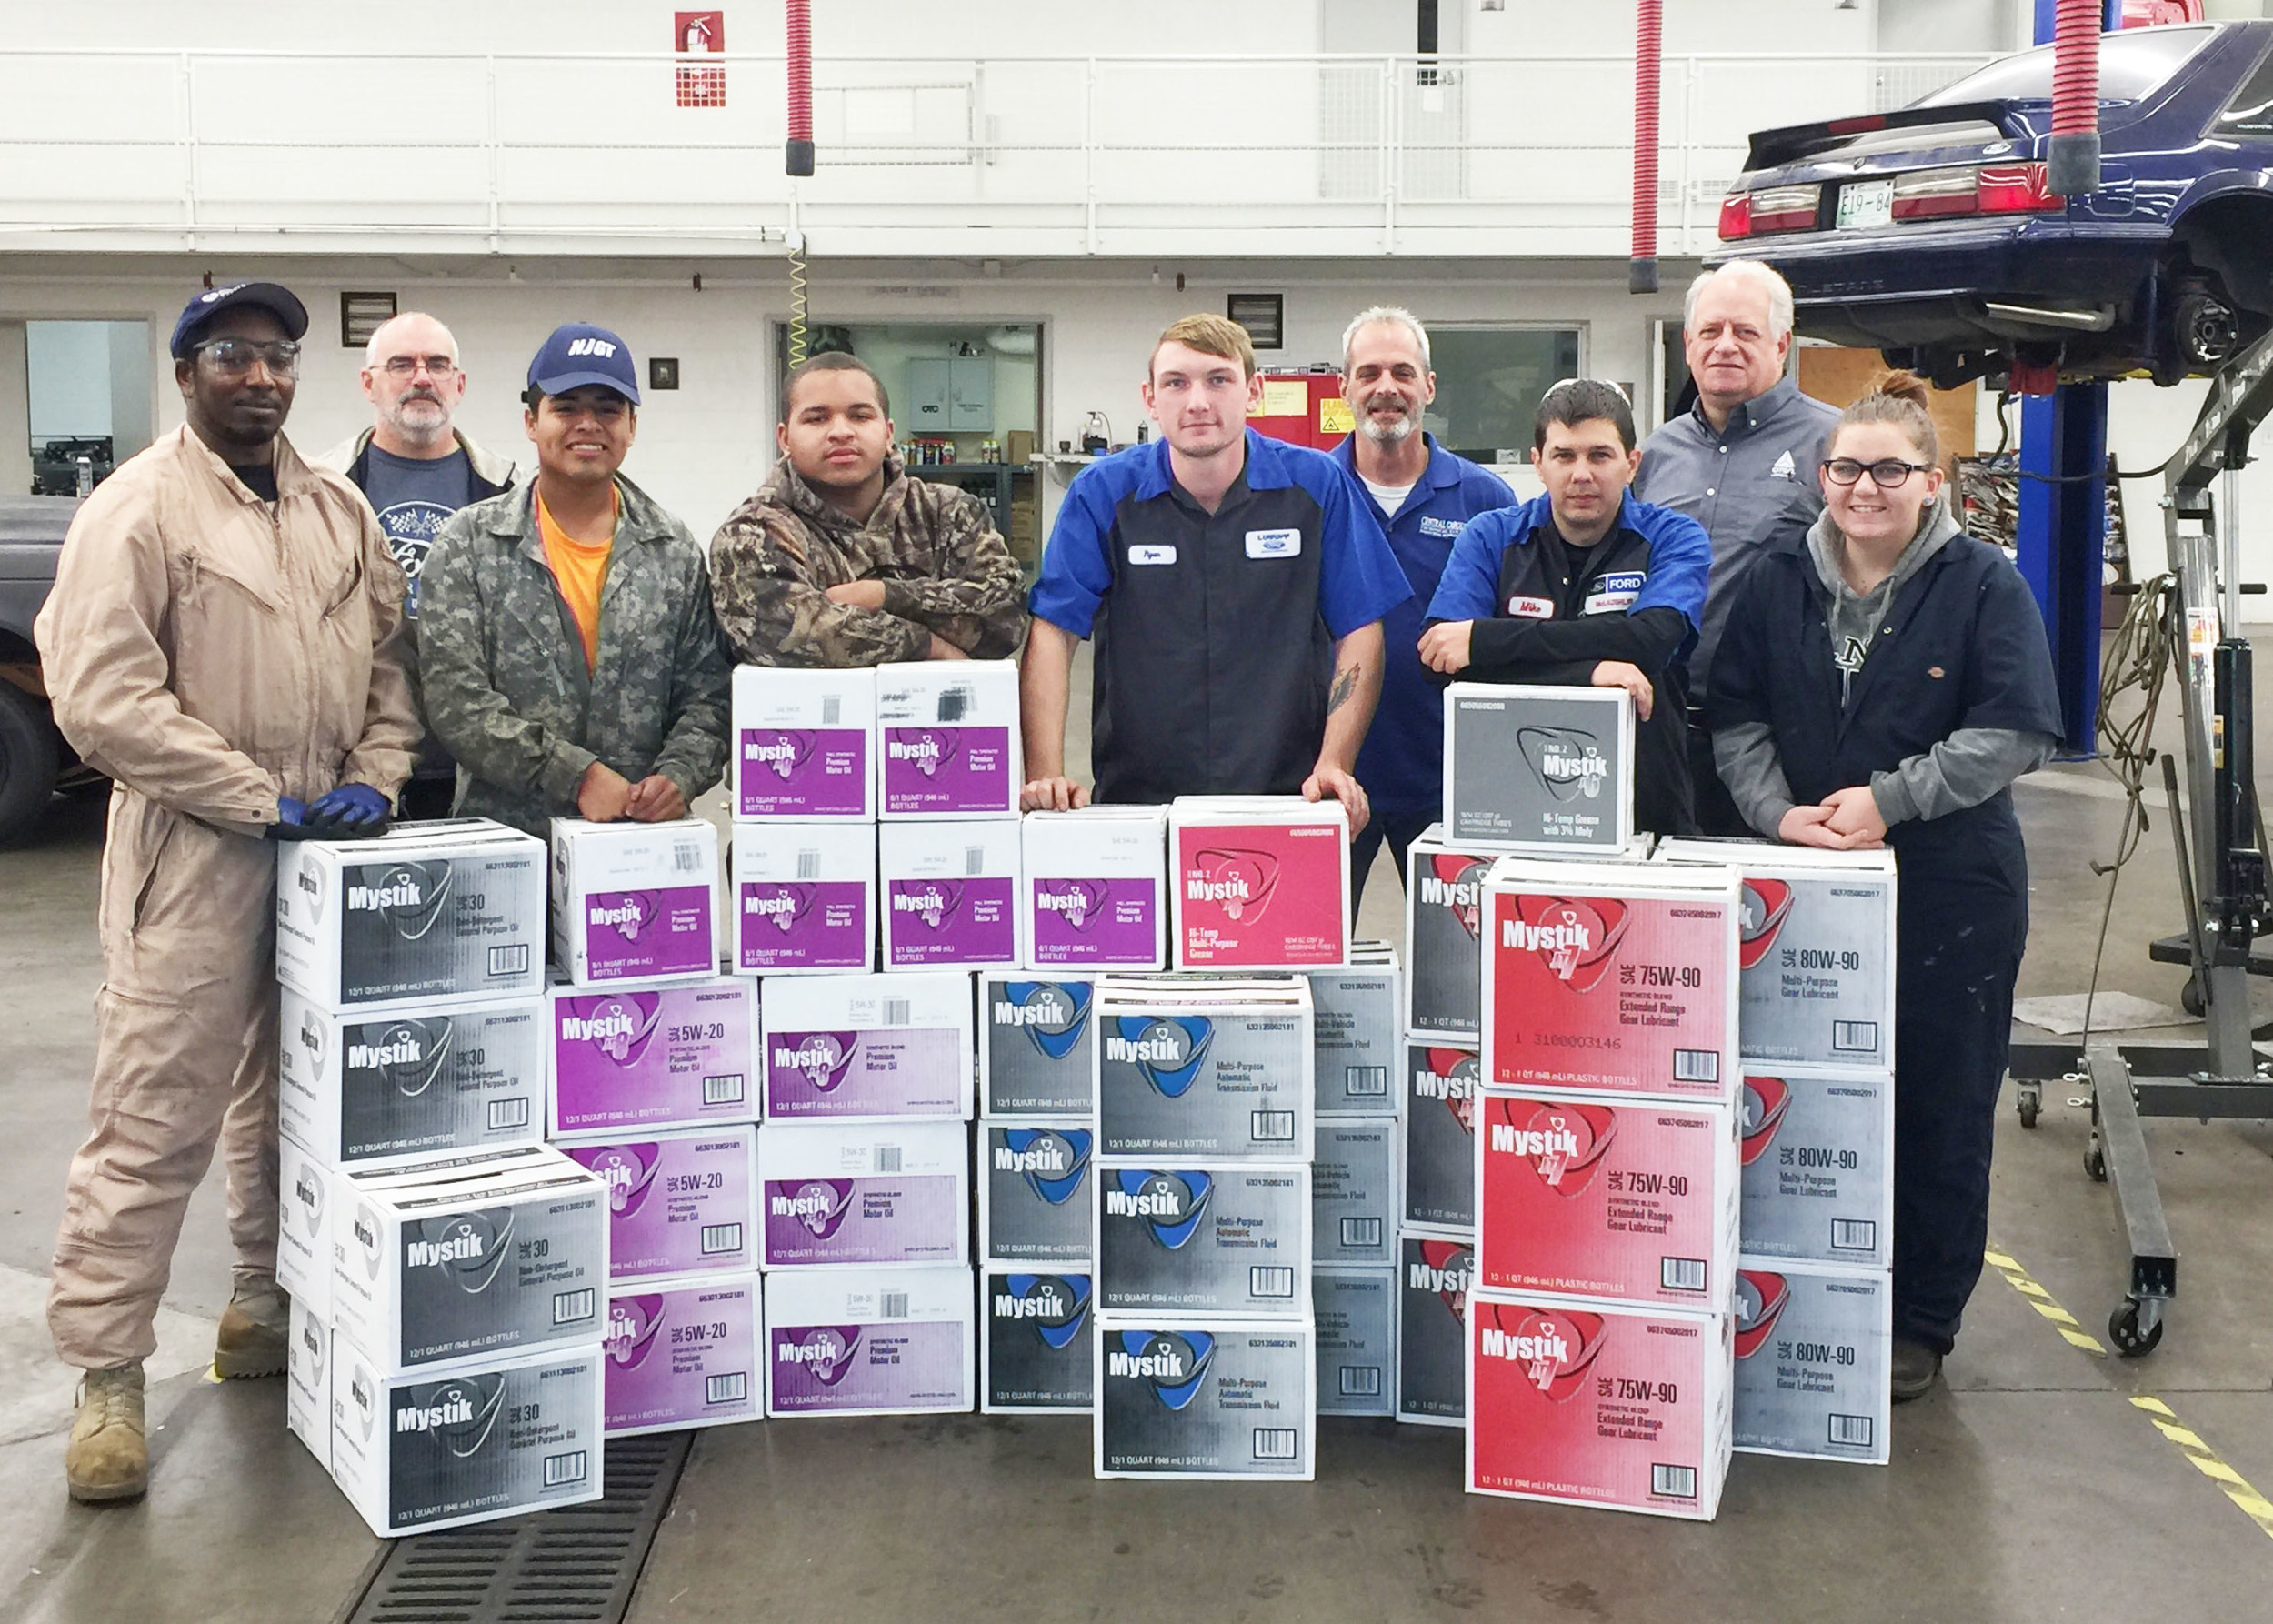 Brewer-Hendley Oil Co. of Sumter and Mystik Lubricants recently gave a year's worth of lubricants to Central Carolina Technical College for use in its Automotive Technology program.